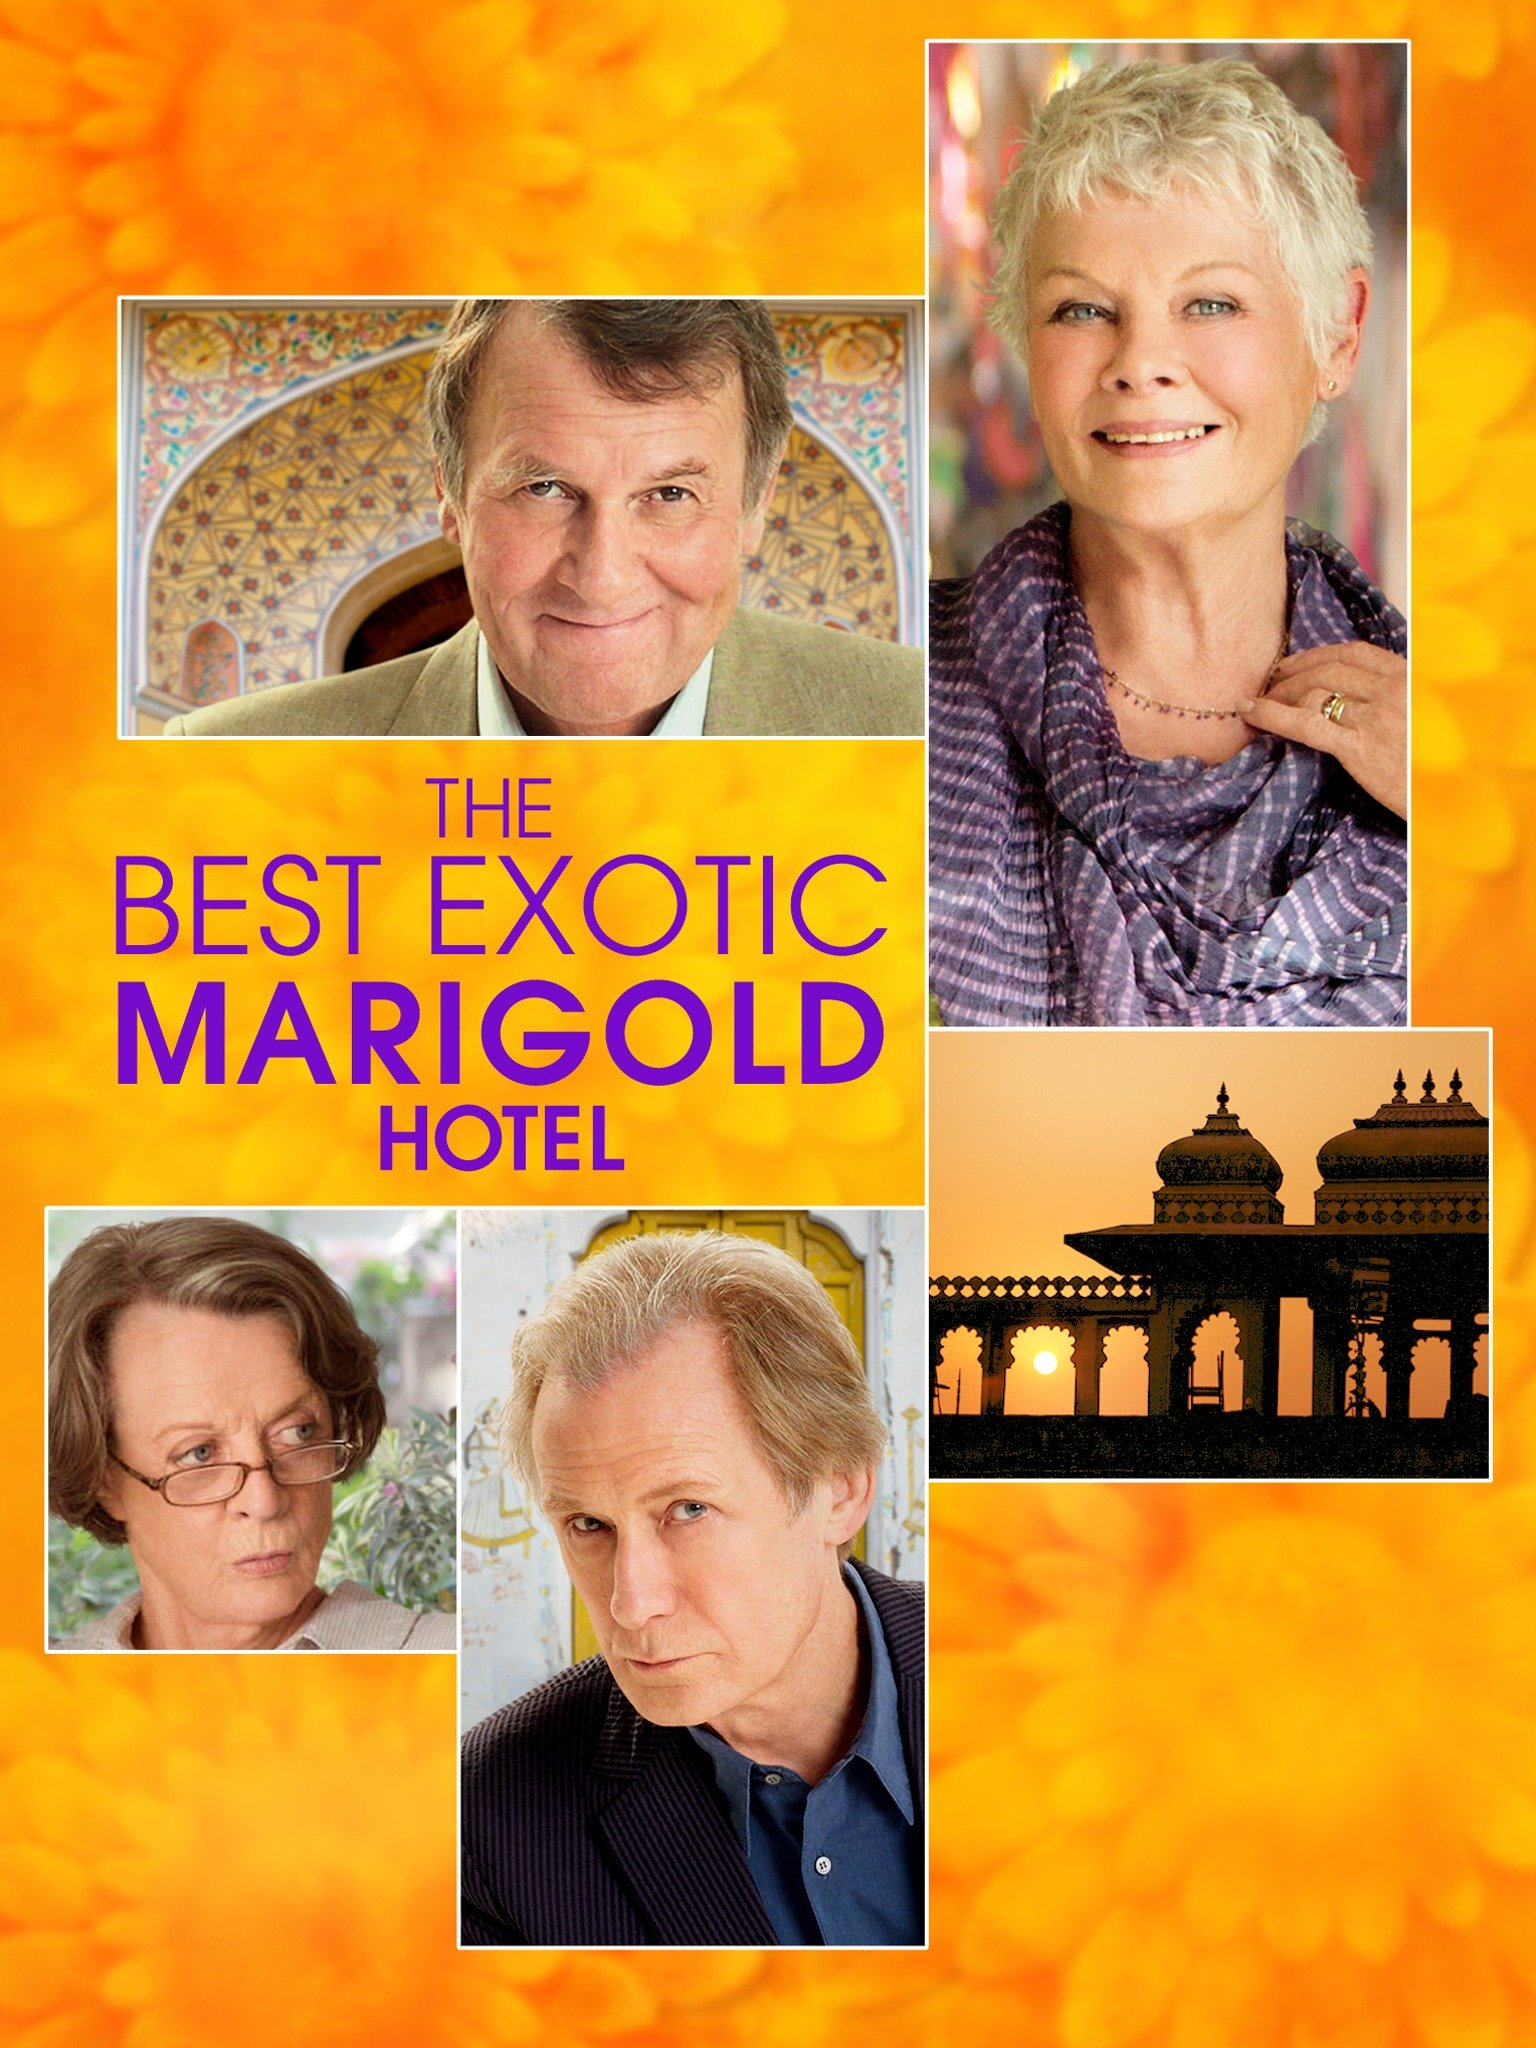 The Best Exotic Marigold Hotel 2011 Rotten Tomatoes